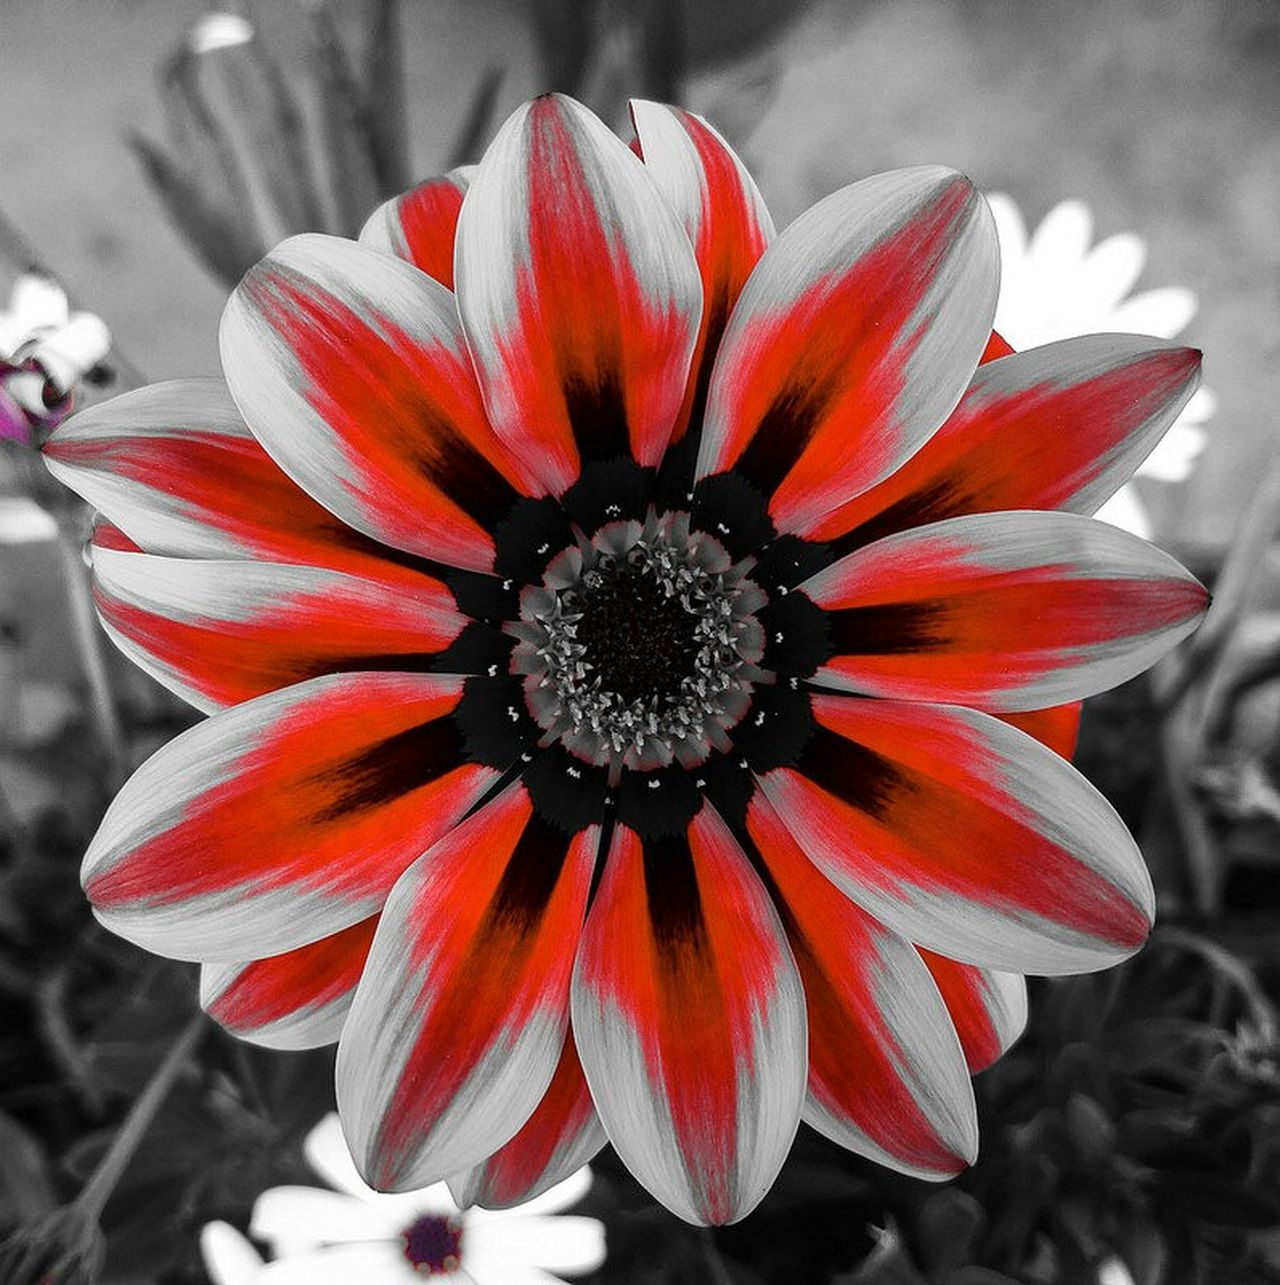 Flower Power - Flower Red Blackandwhite PtOlix Justforfun